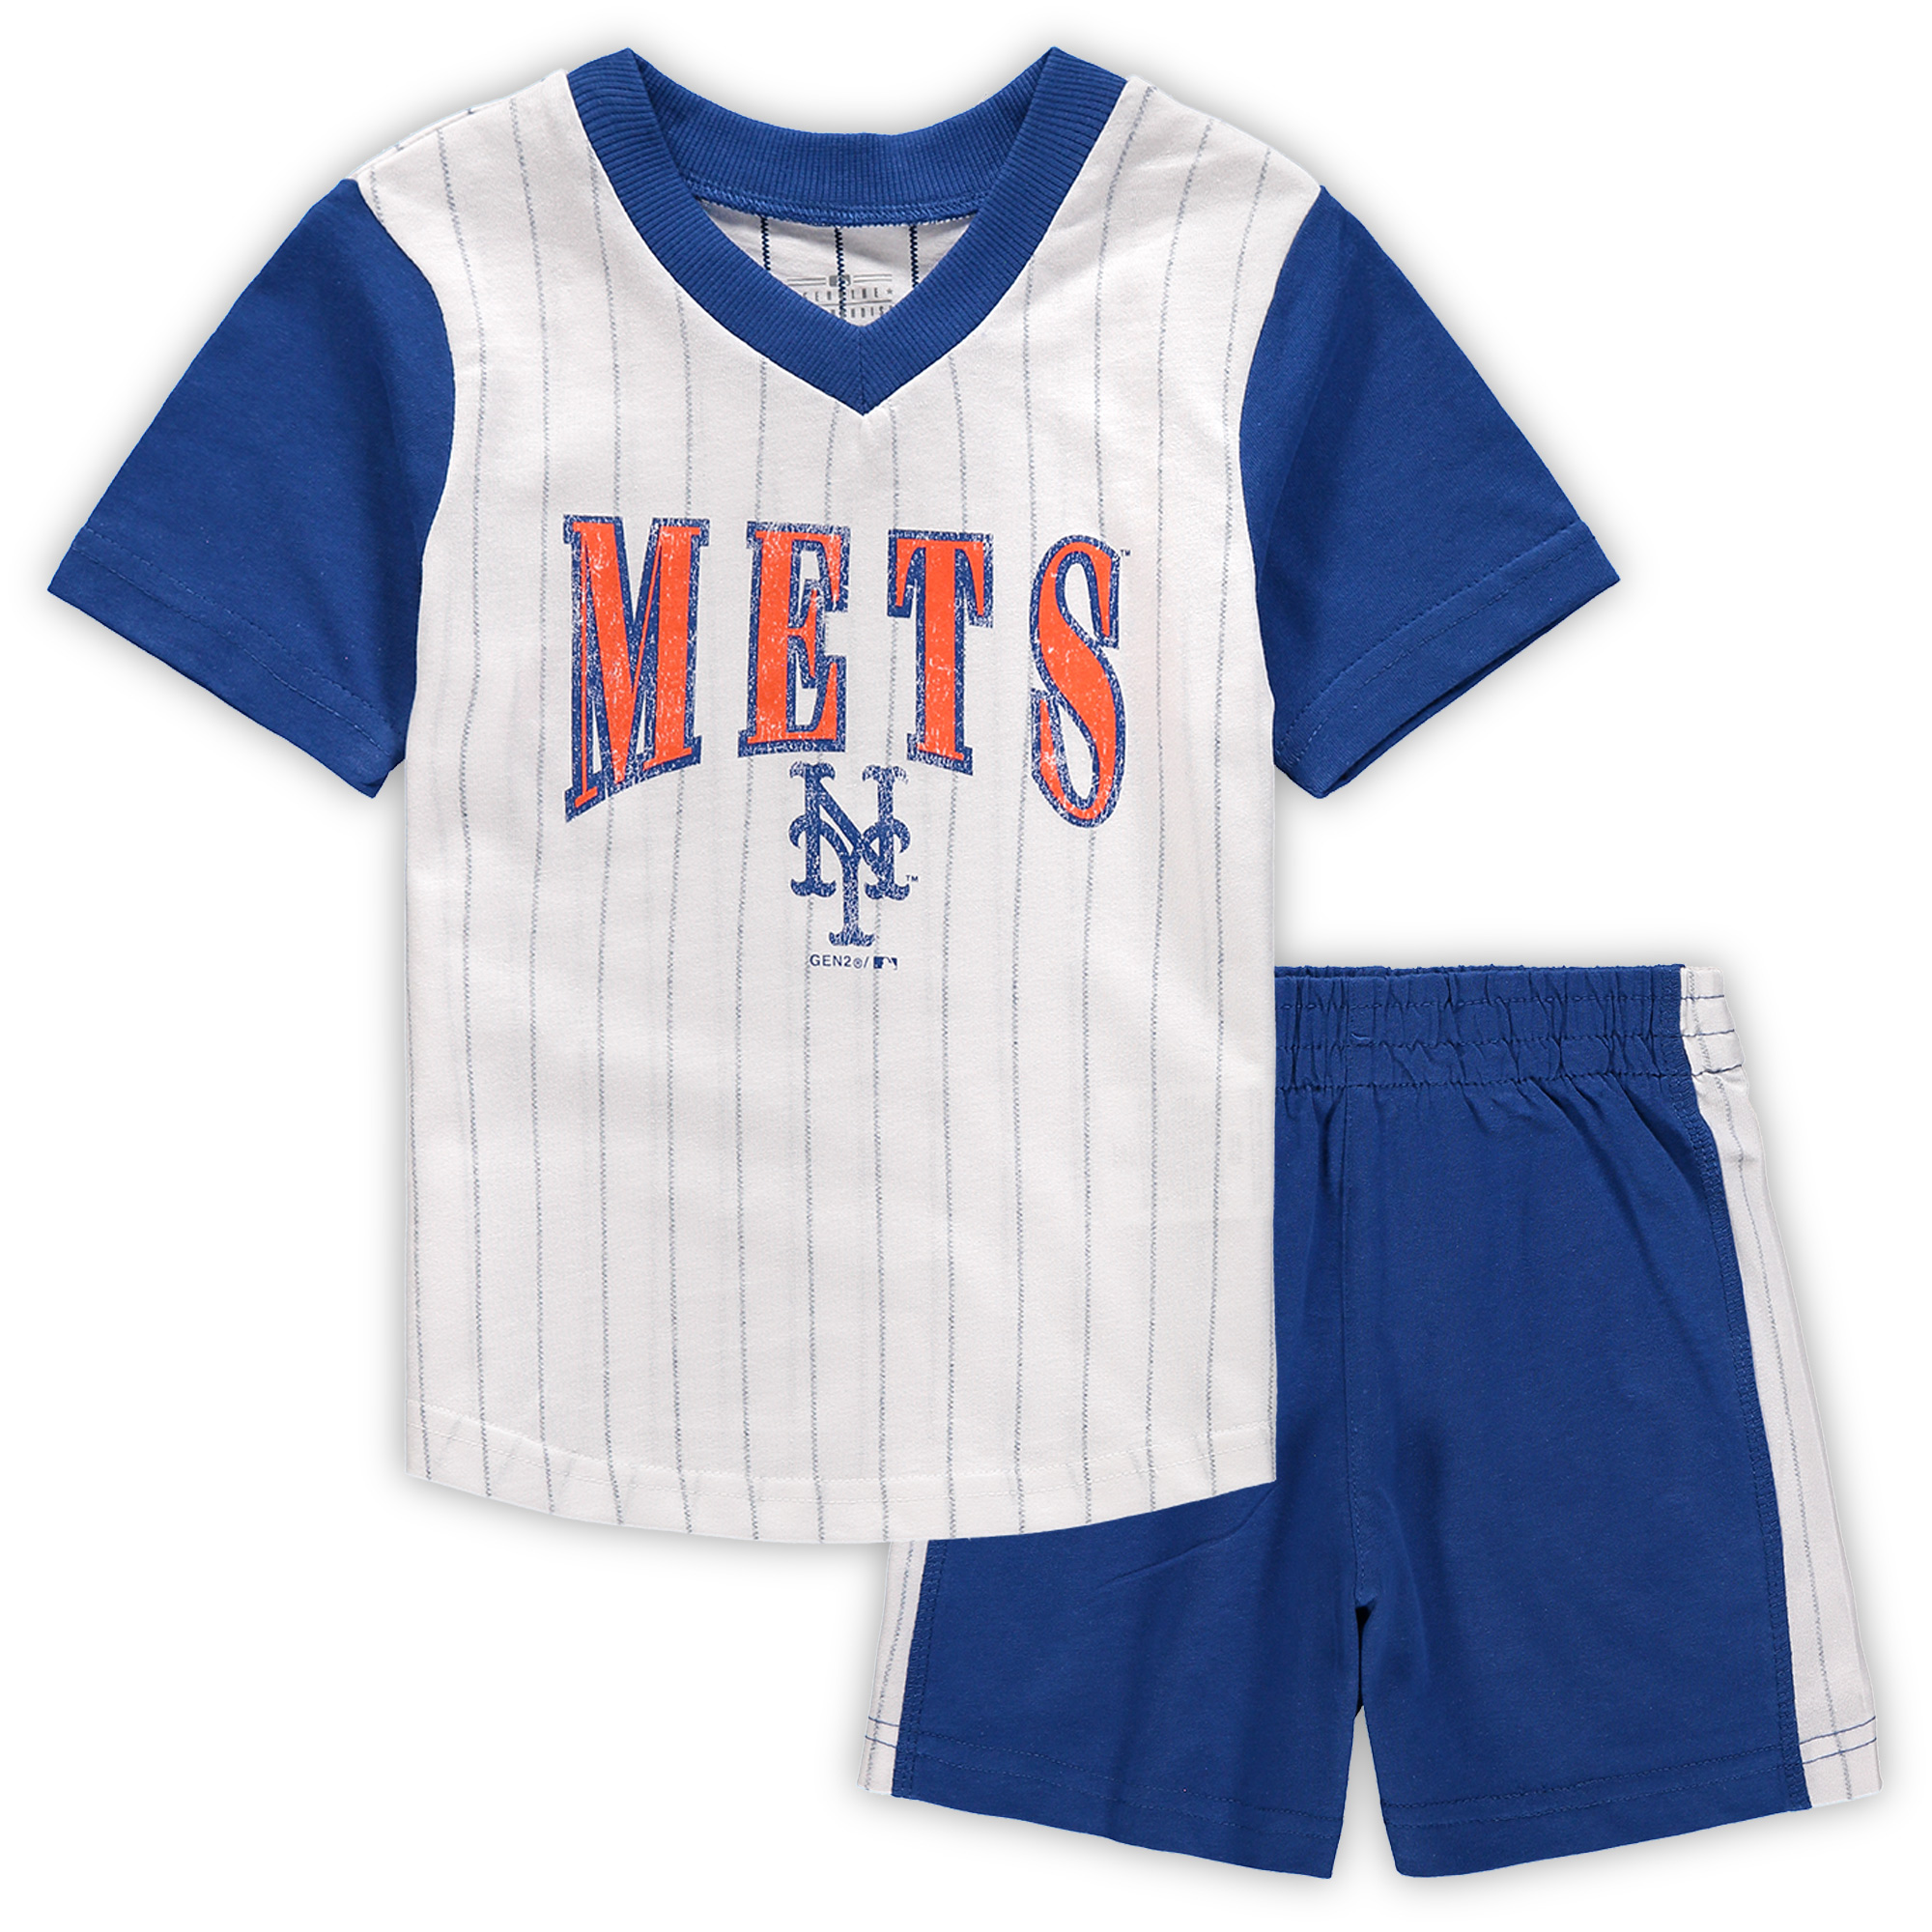 New York Mets Toddler Little Hitter V-Neck T-Shirt & Shorts Set - White/Royal